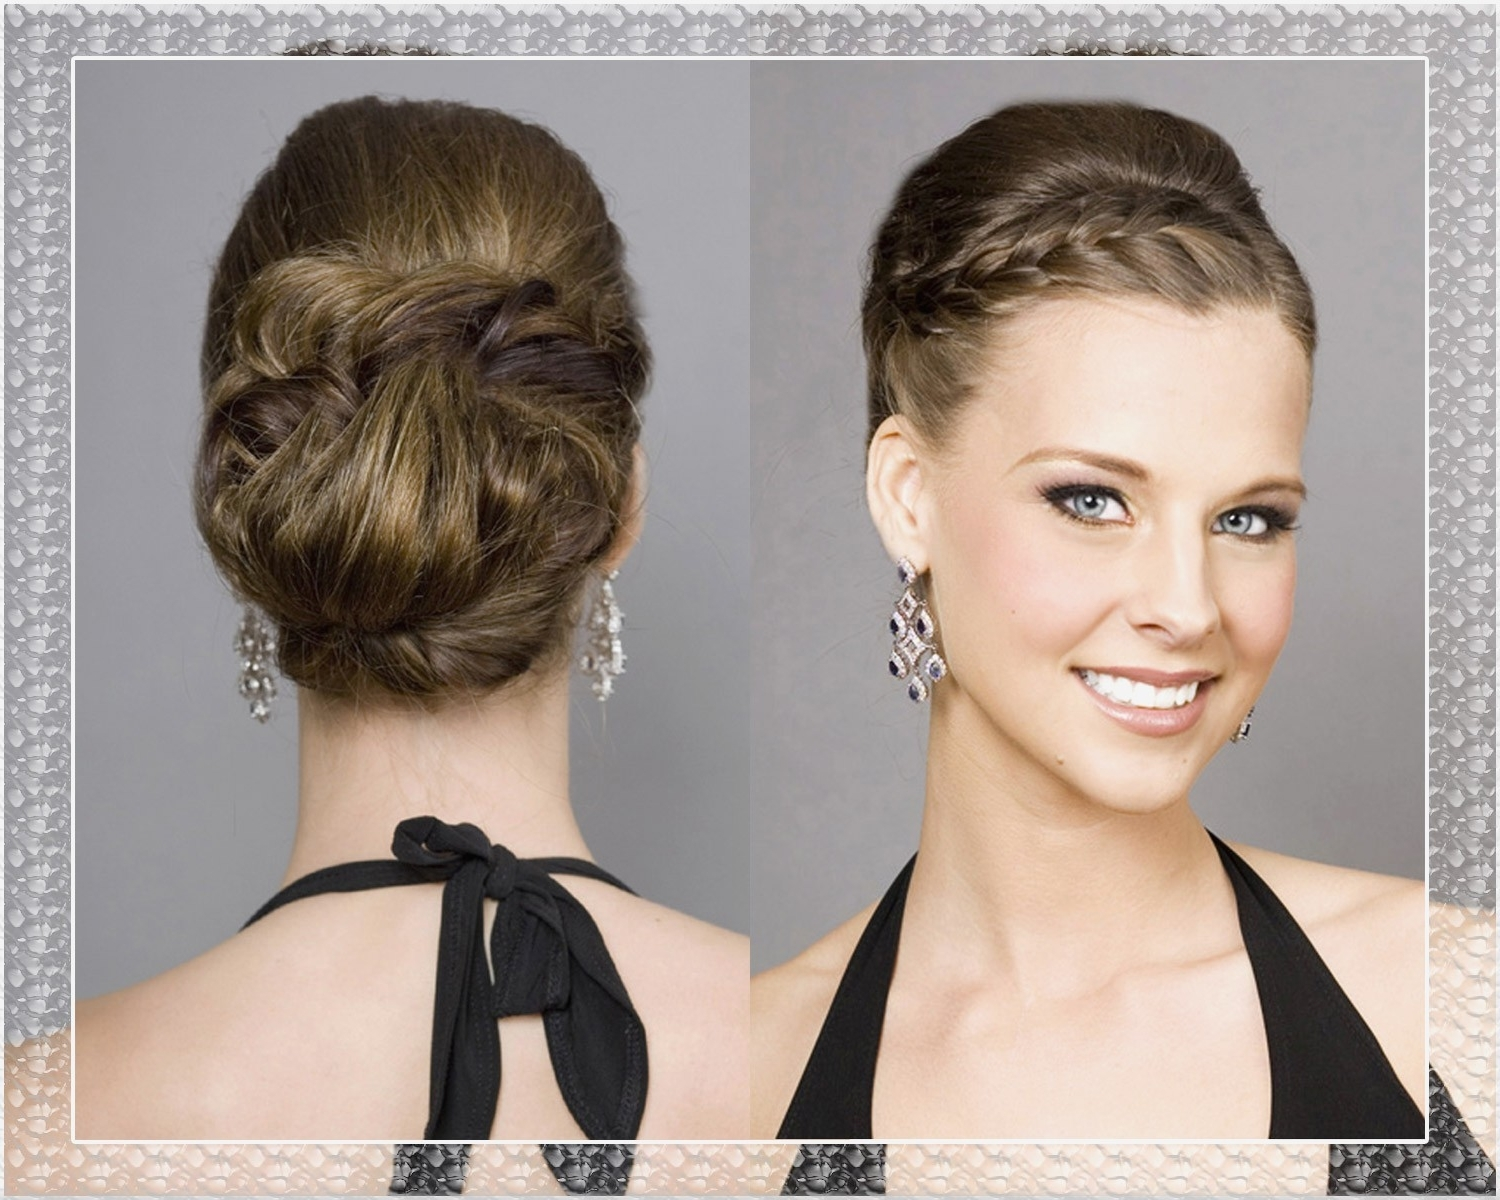 Current Wedding Hairstyles For Medium Length Hair With Fringe Pertaining To Wedding Hairstyles : Wedding Hairstyles For Long Hair With Fringe (View 7 of 15)